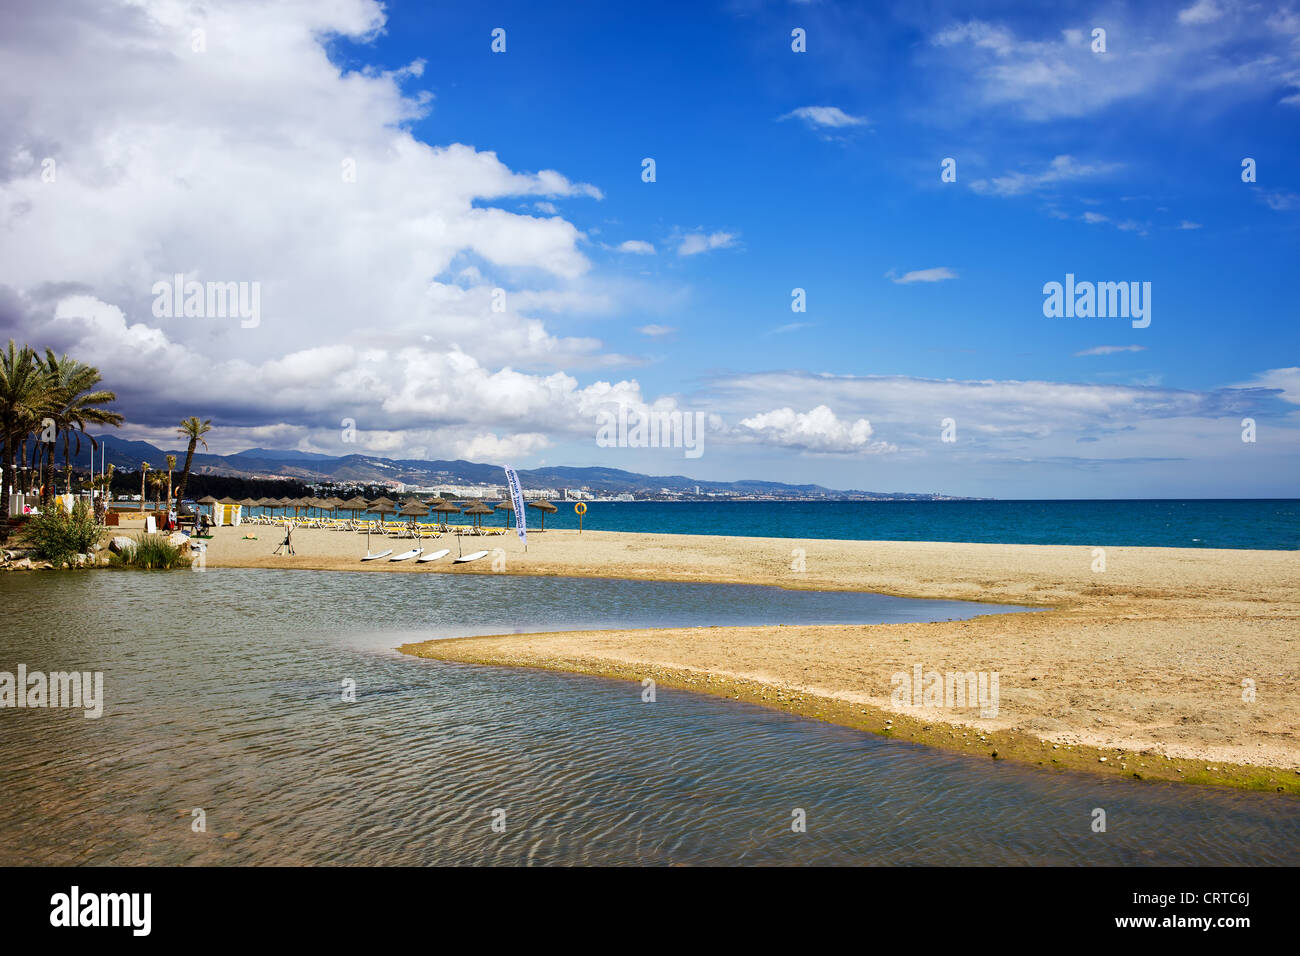 Beach, river and the sea vacation scenery on Costa del Sol in Spain, located between Marbella and Puerto Banus. - Stock Image